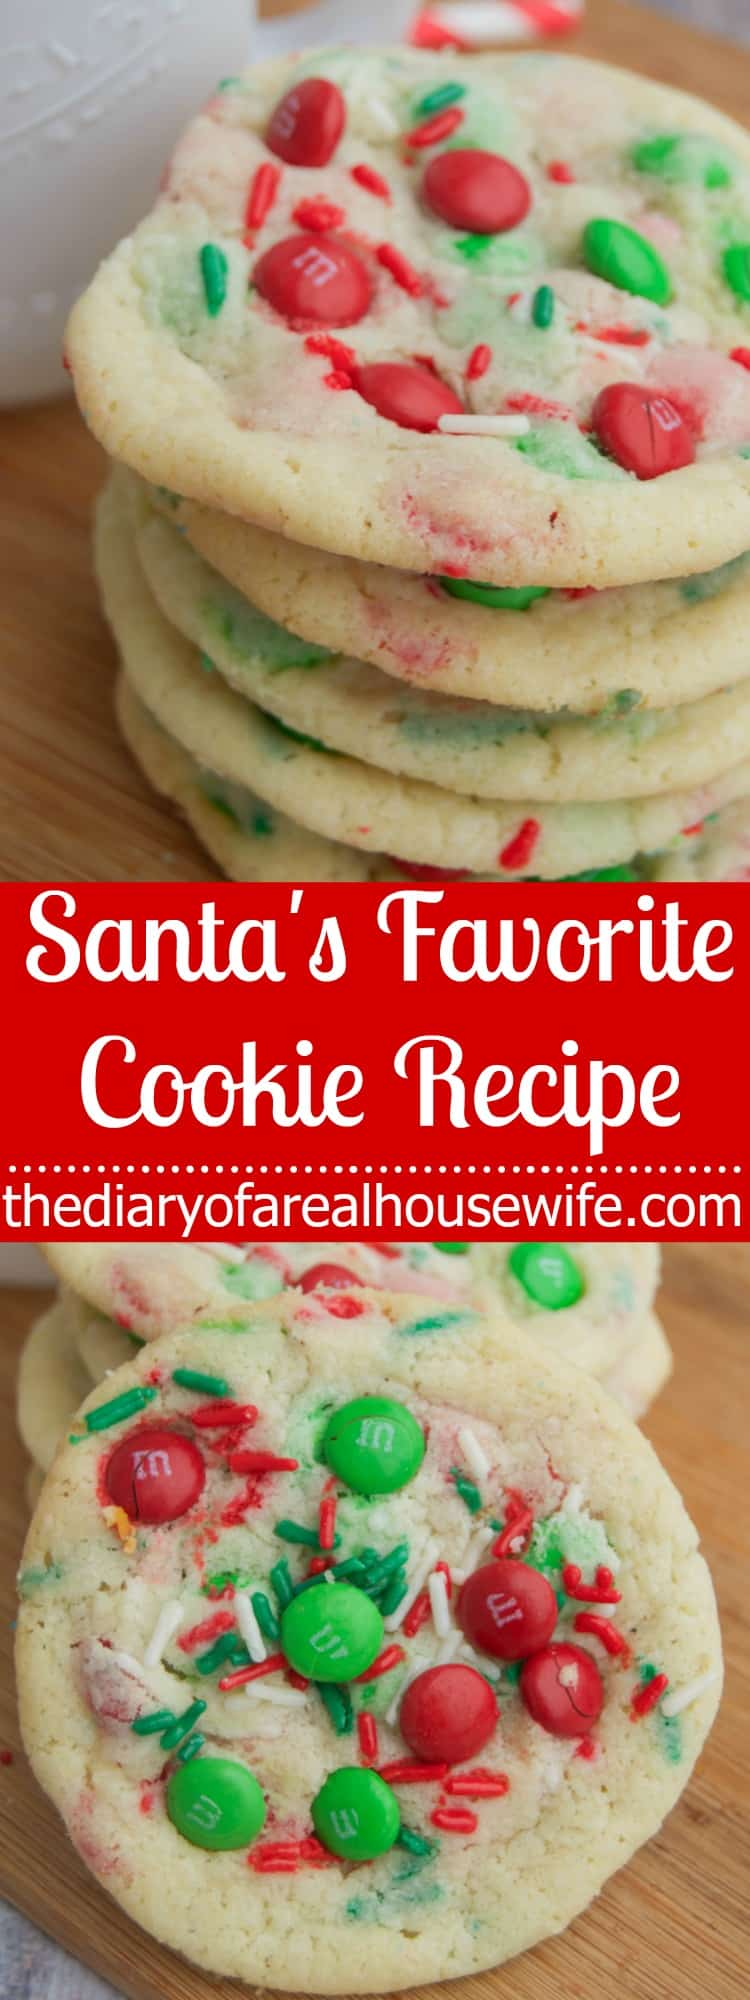 Santas Favorite Cookie Recipe